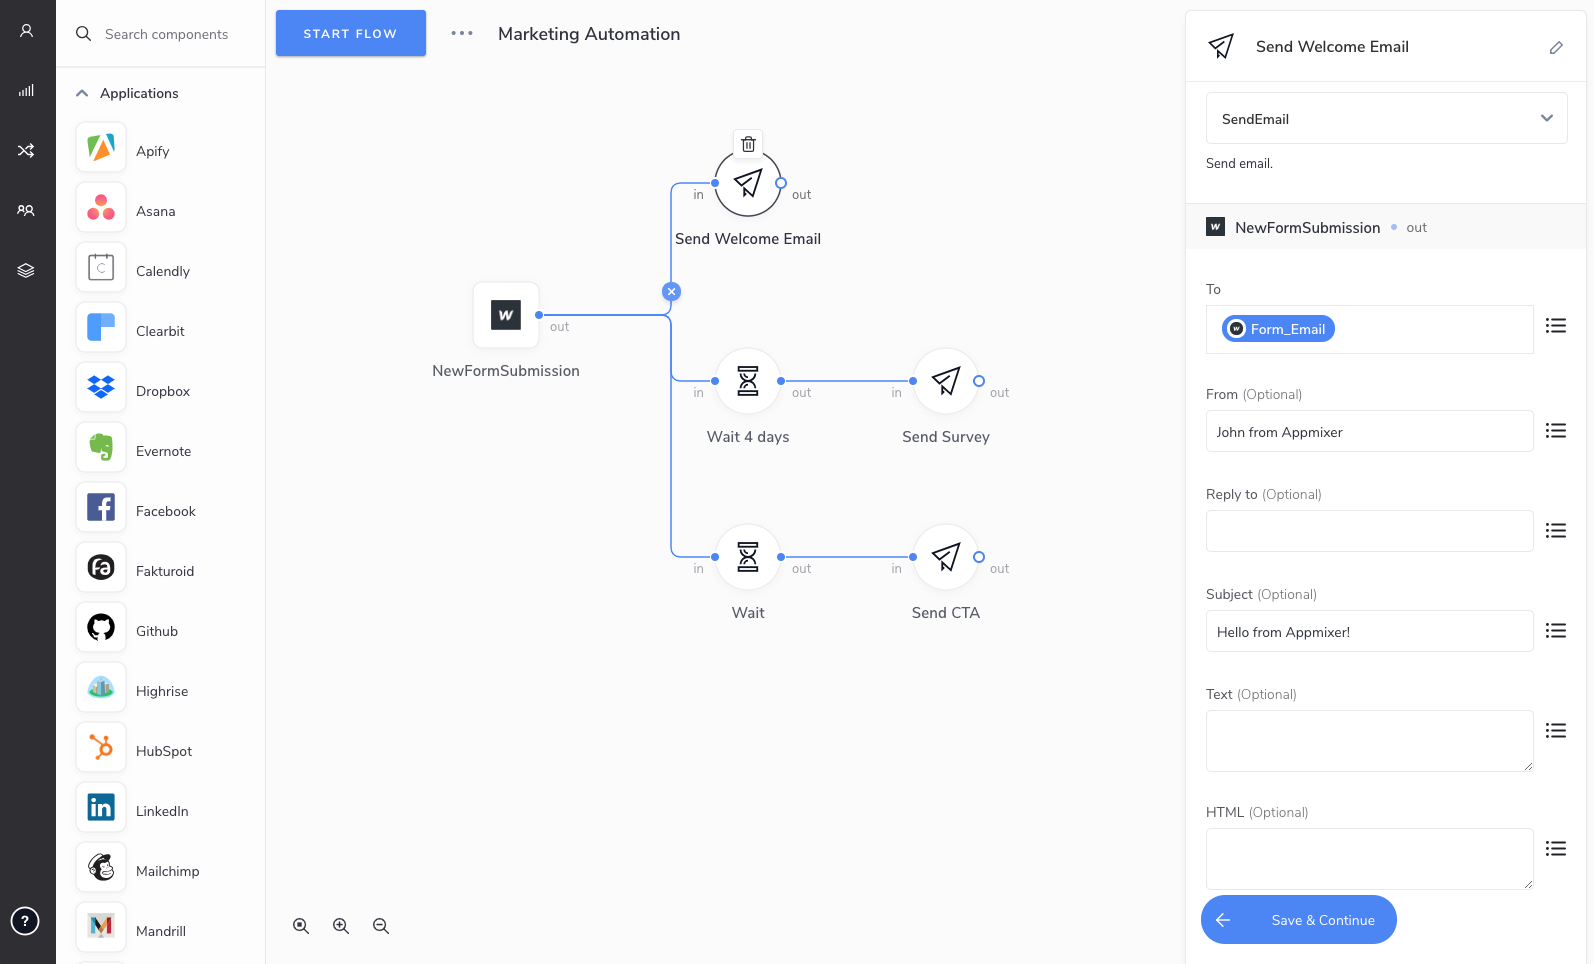 Create workflows by dragging app connectors onto the canvas.